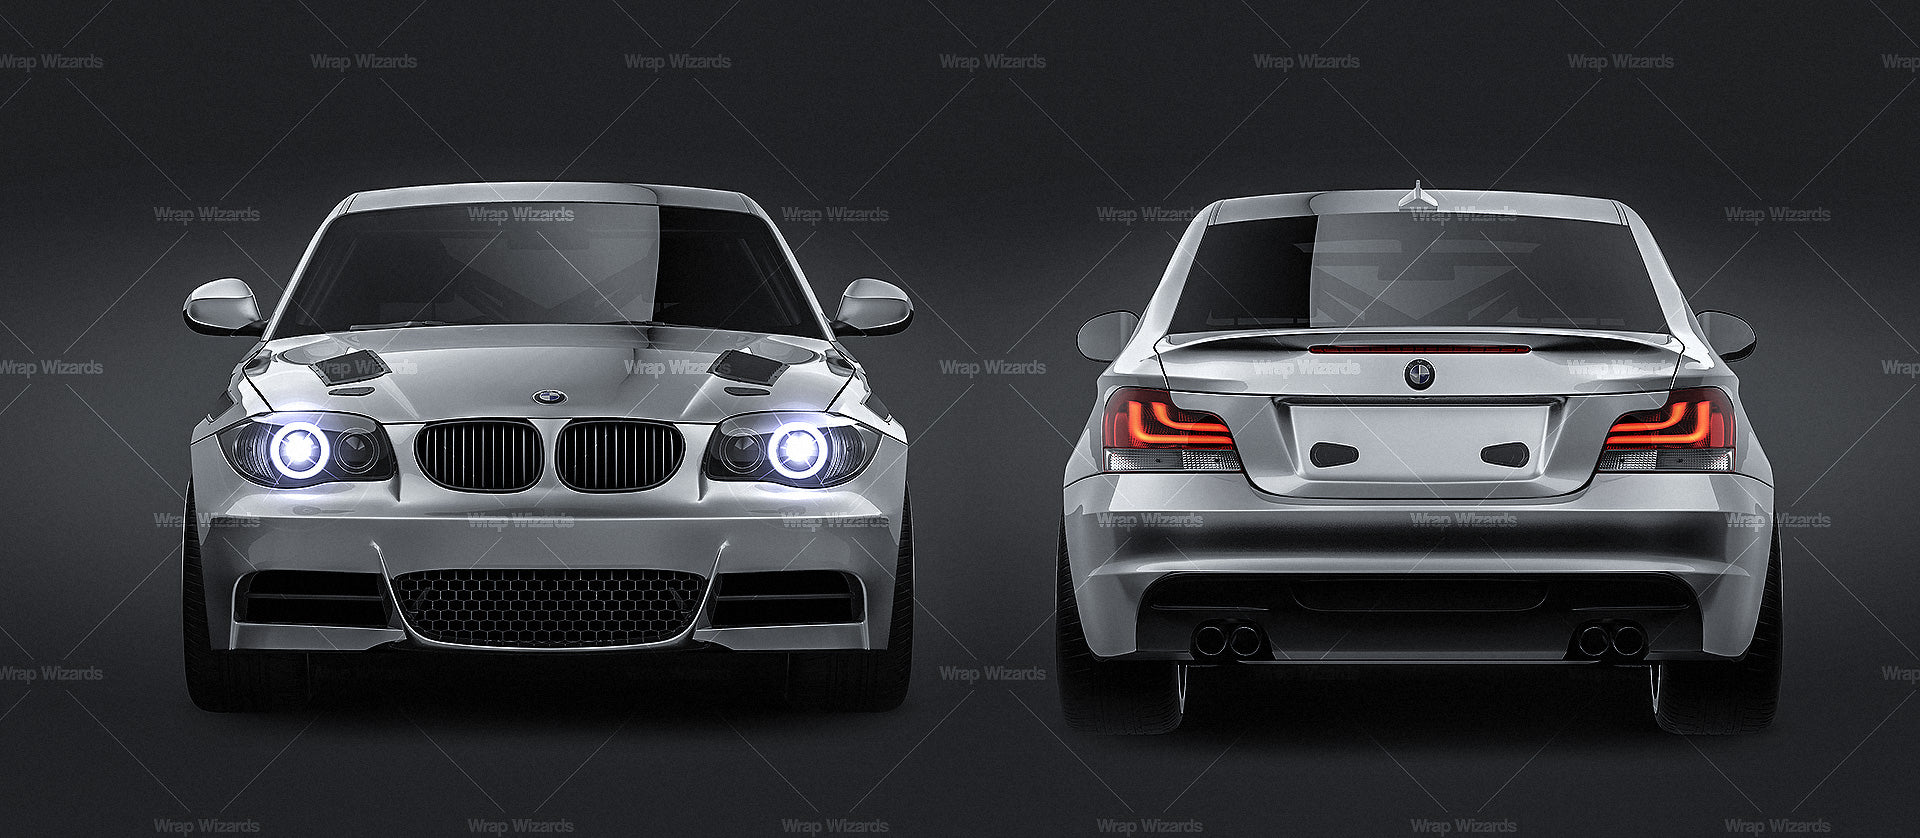 BMW 1 Series E82 Coupe 2009 - all sides Car Mockup Template.psd